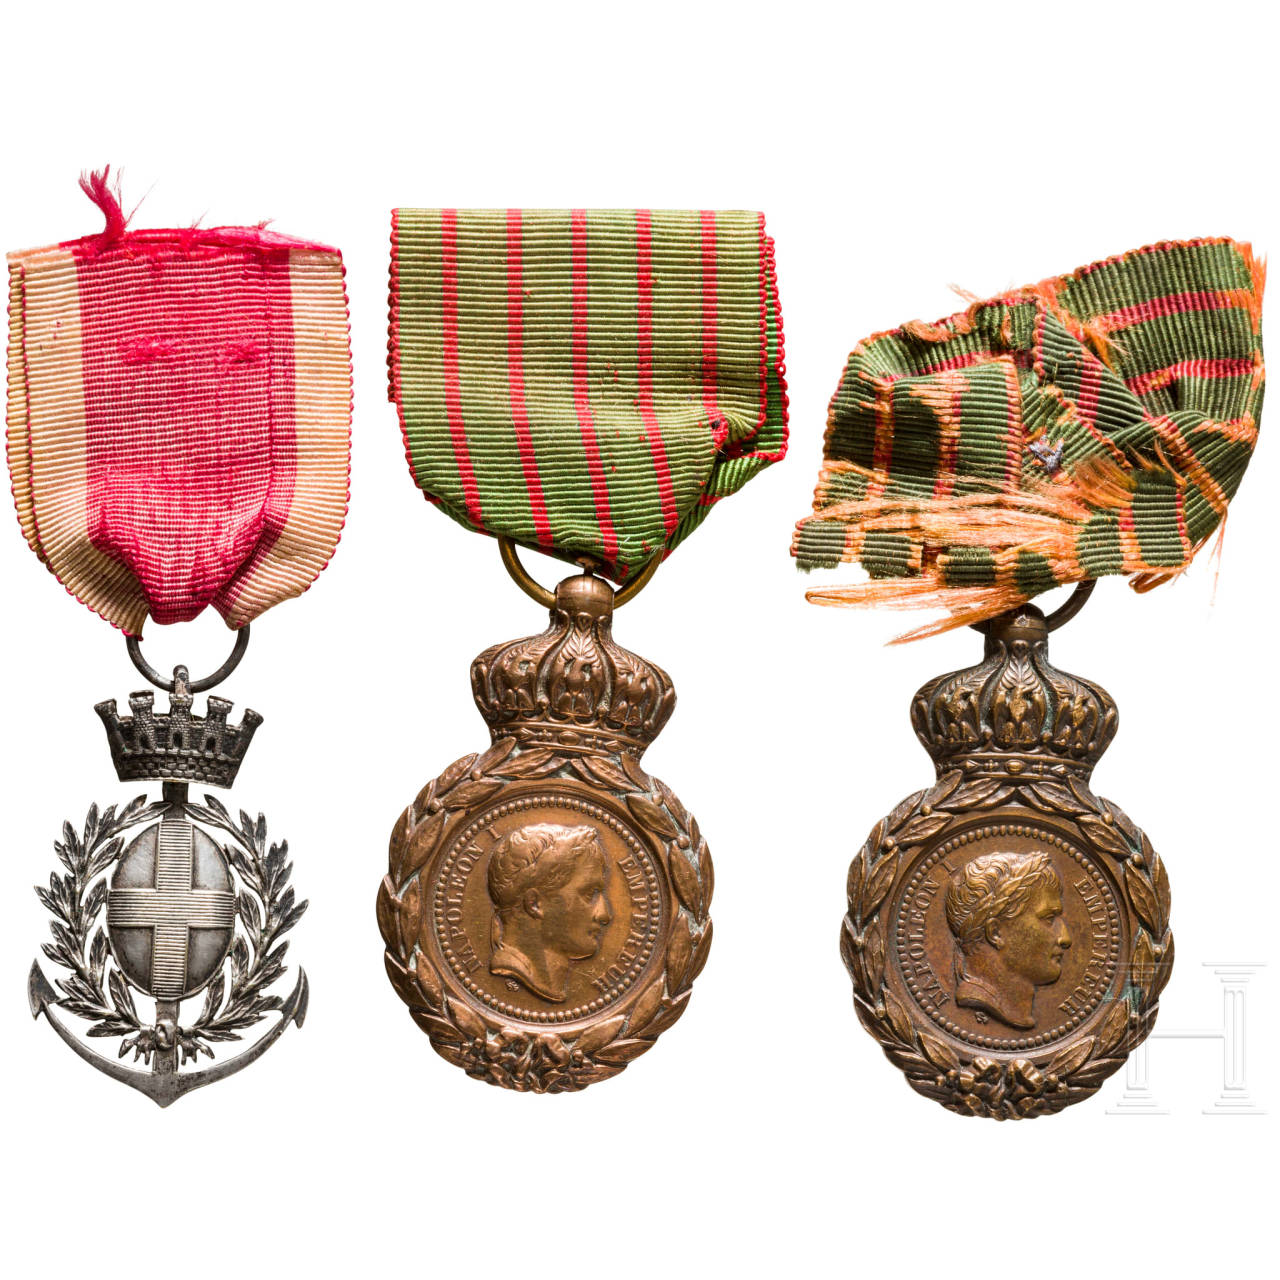 Three medals, France, 19th century